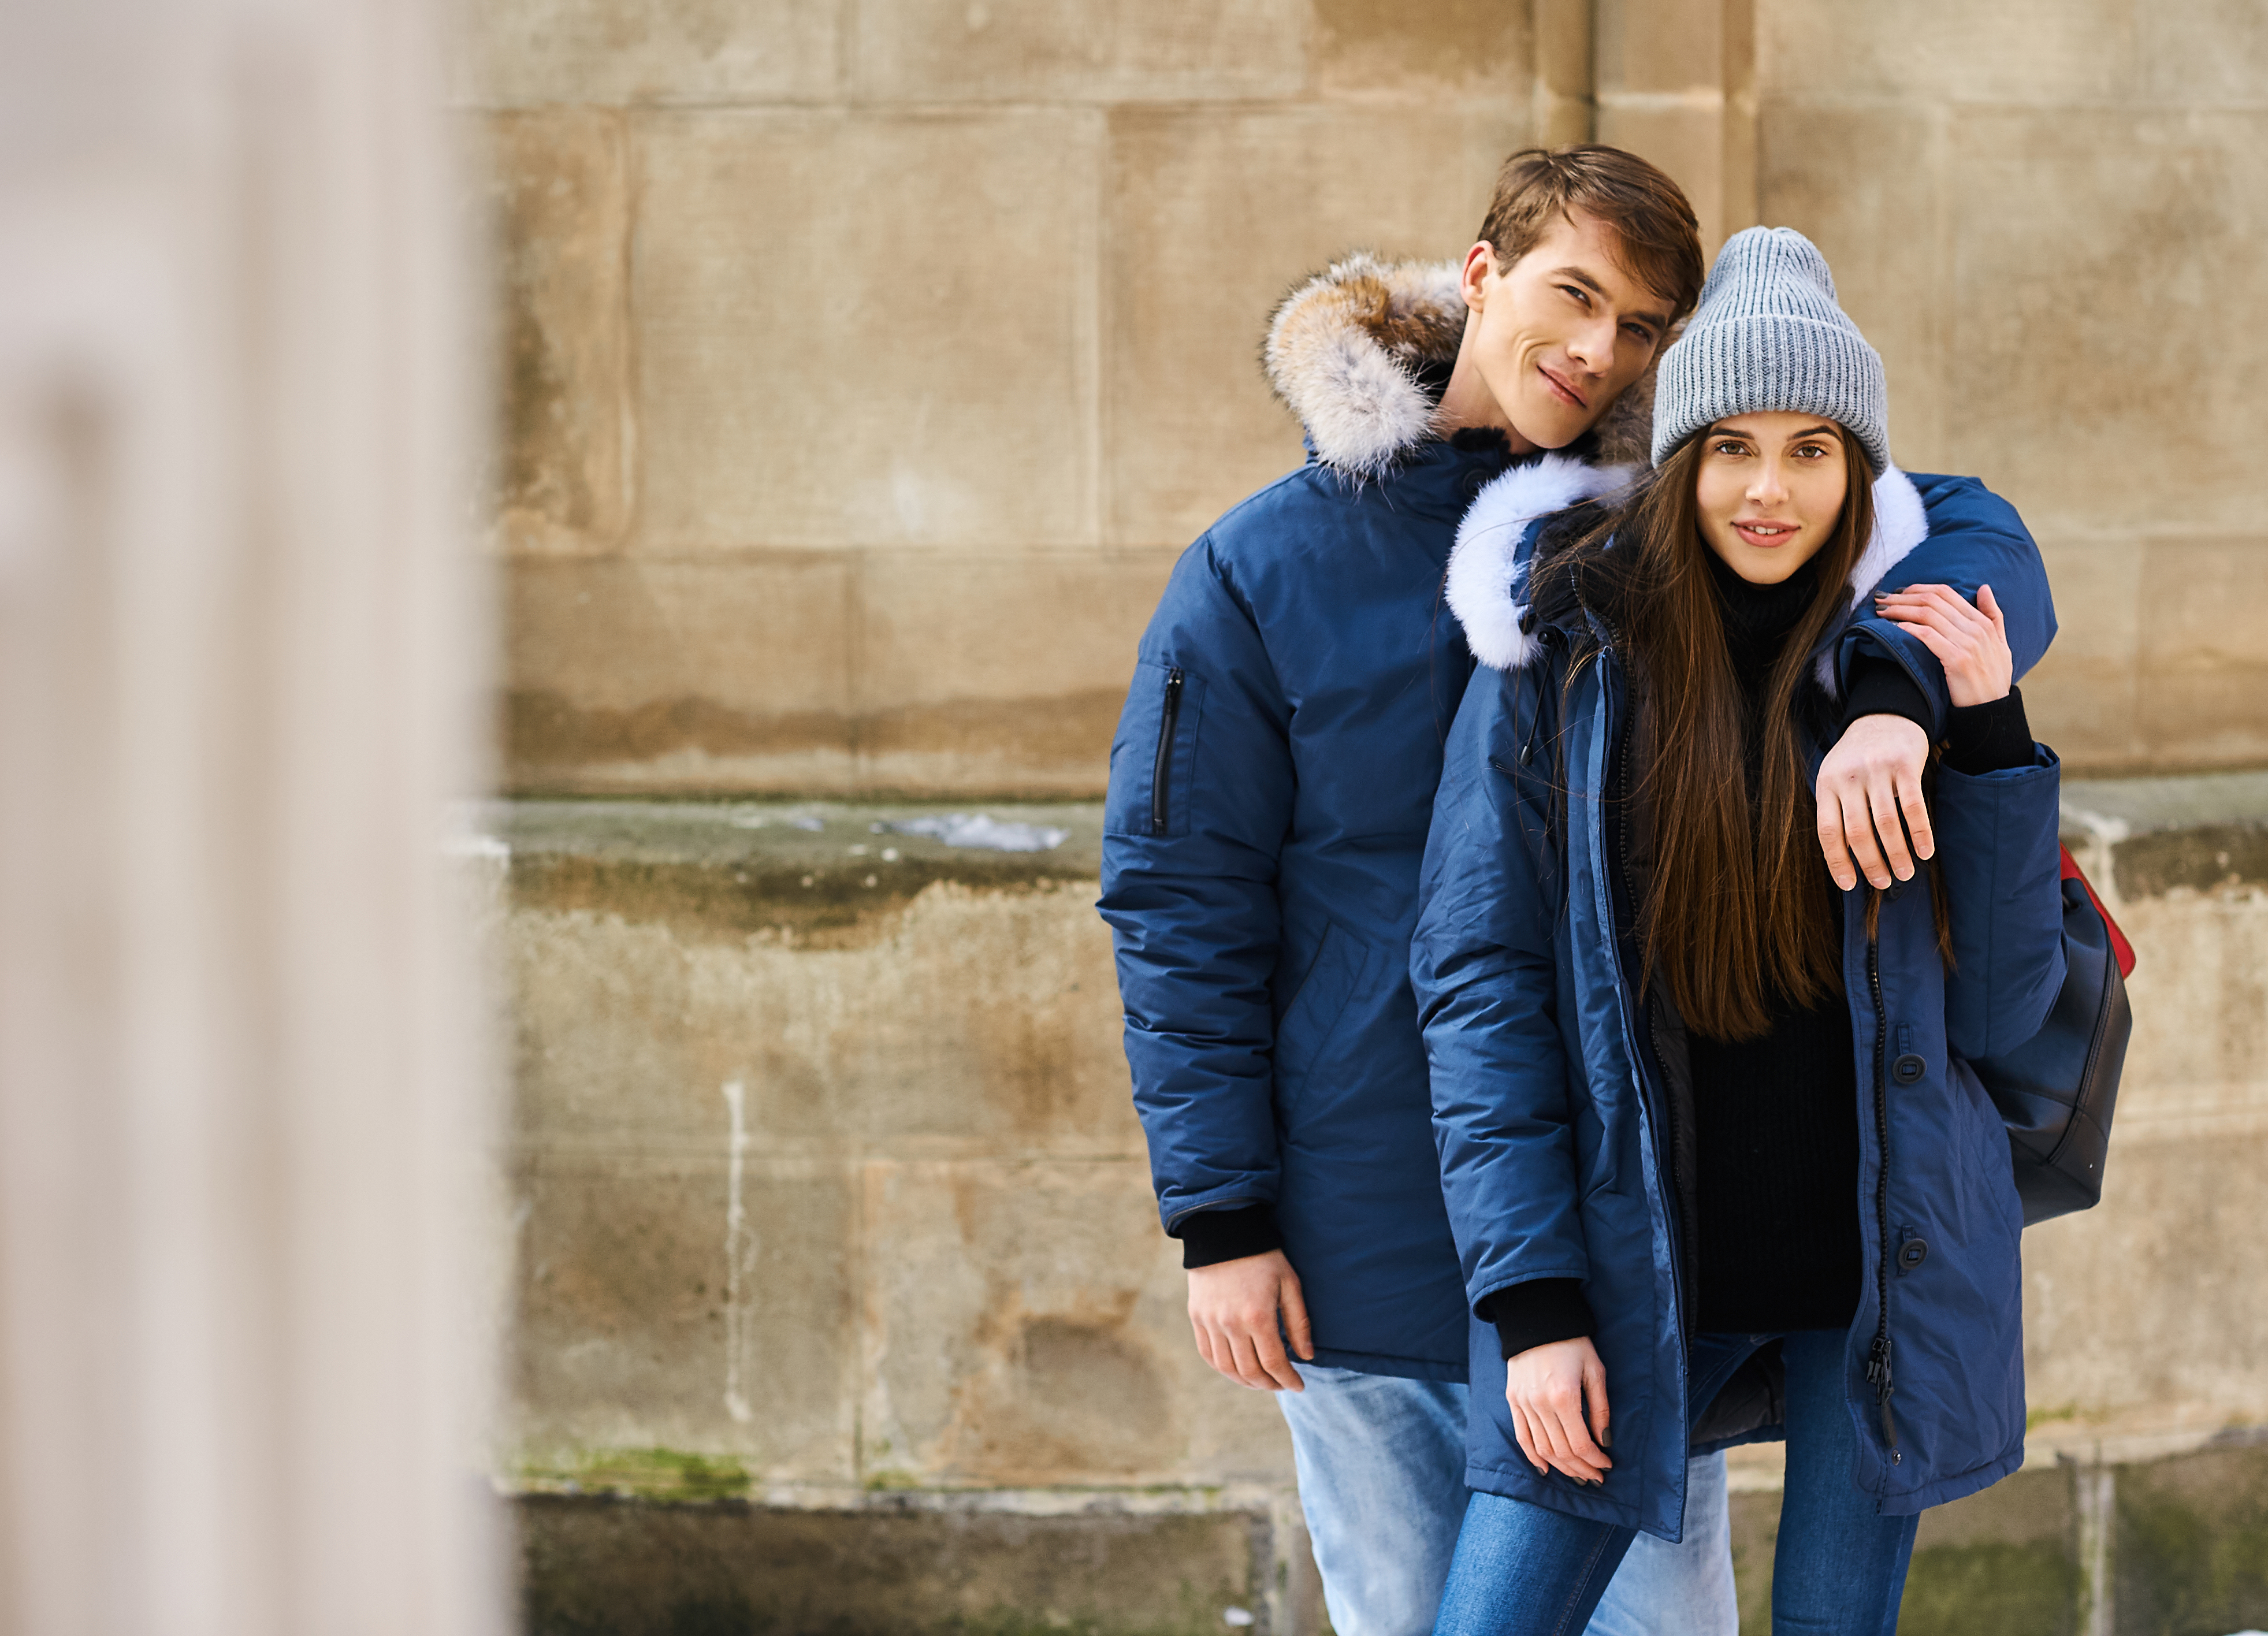 The Warmest Luxury Coats are Stylish, Functional and Made in Canada